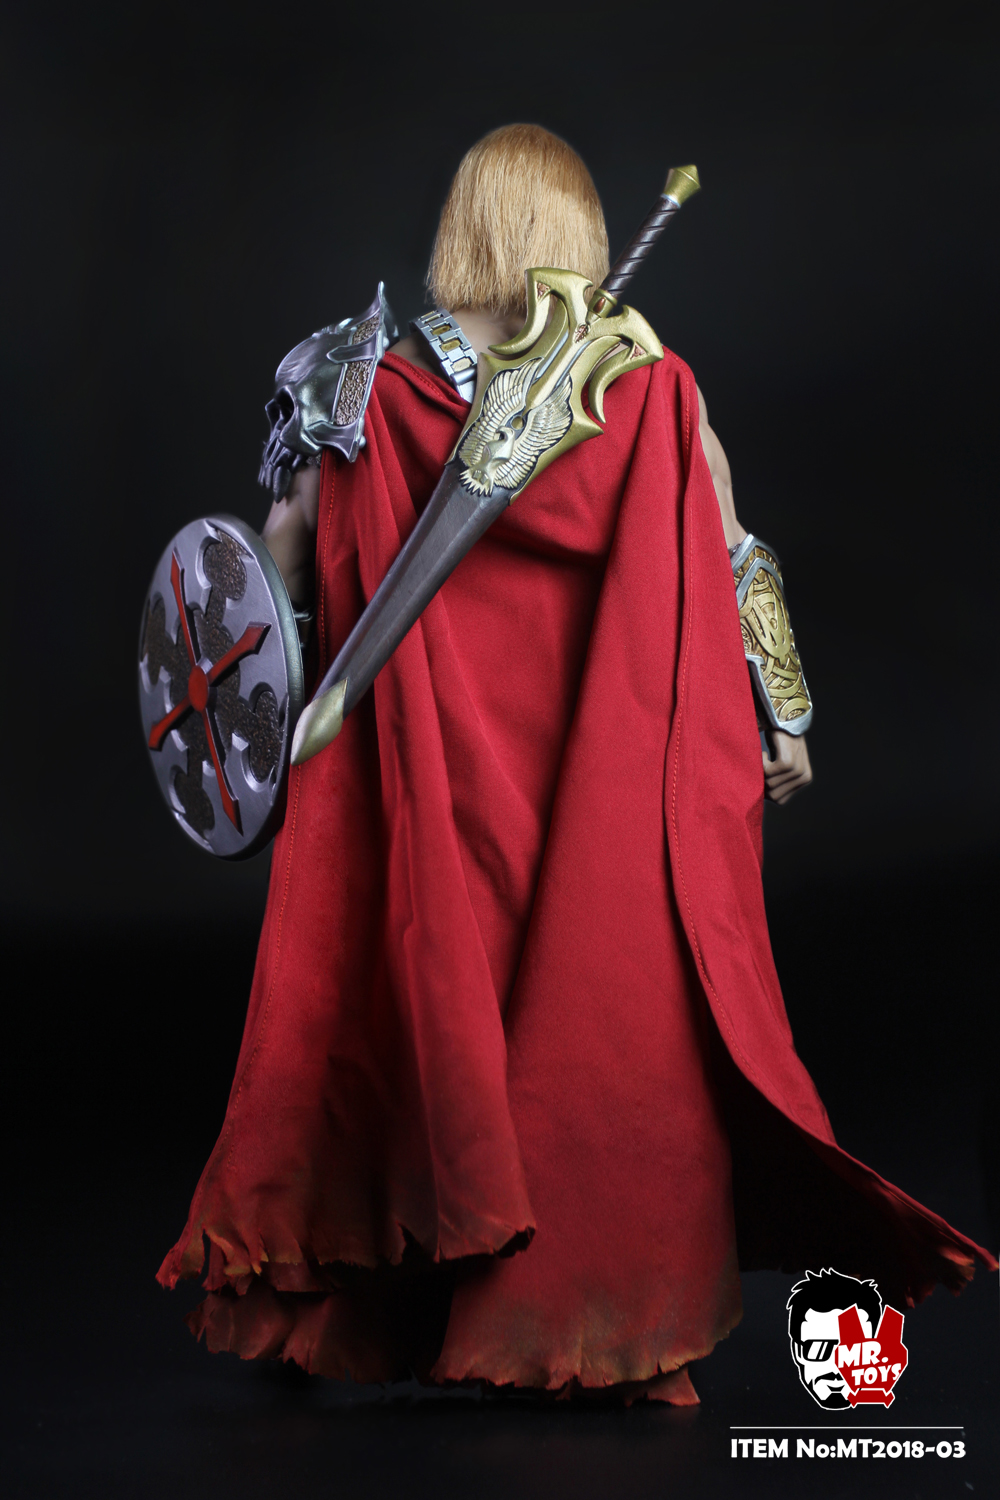 NEW PRODUCT: Mr. Toys MT2018-03 1/6 He-Man head carving costume set O1cn0125